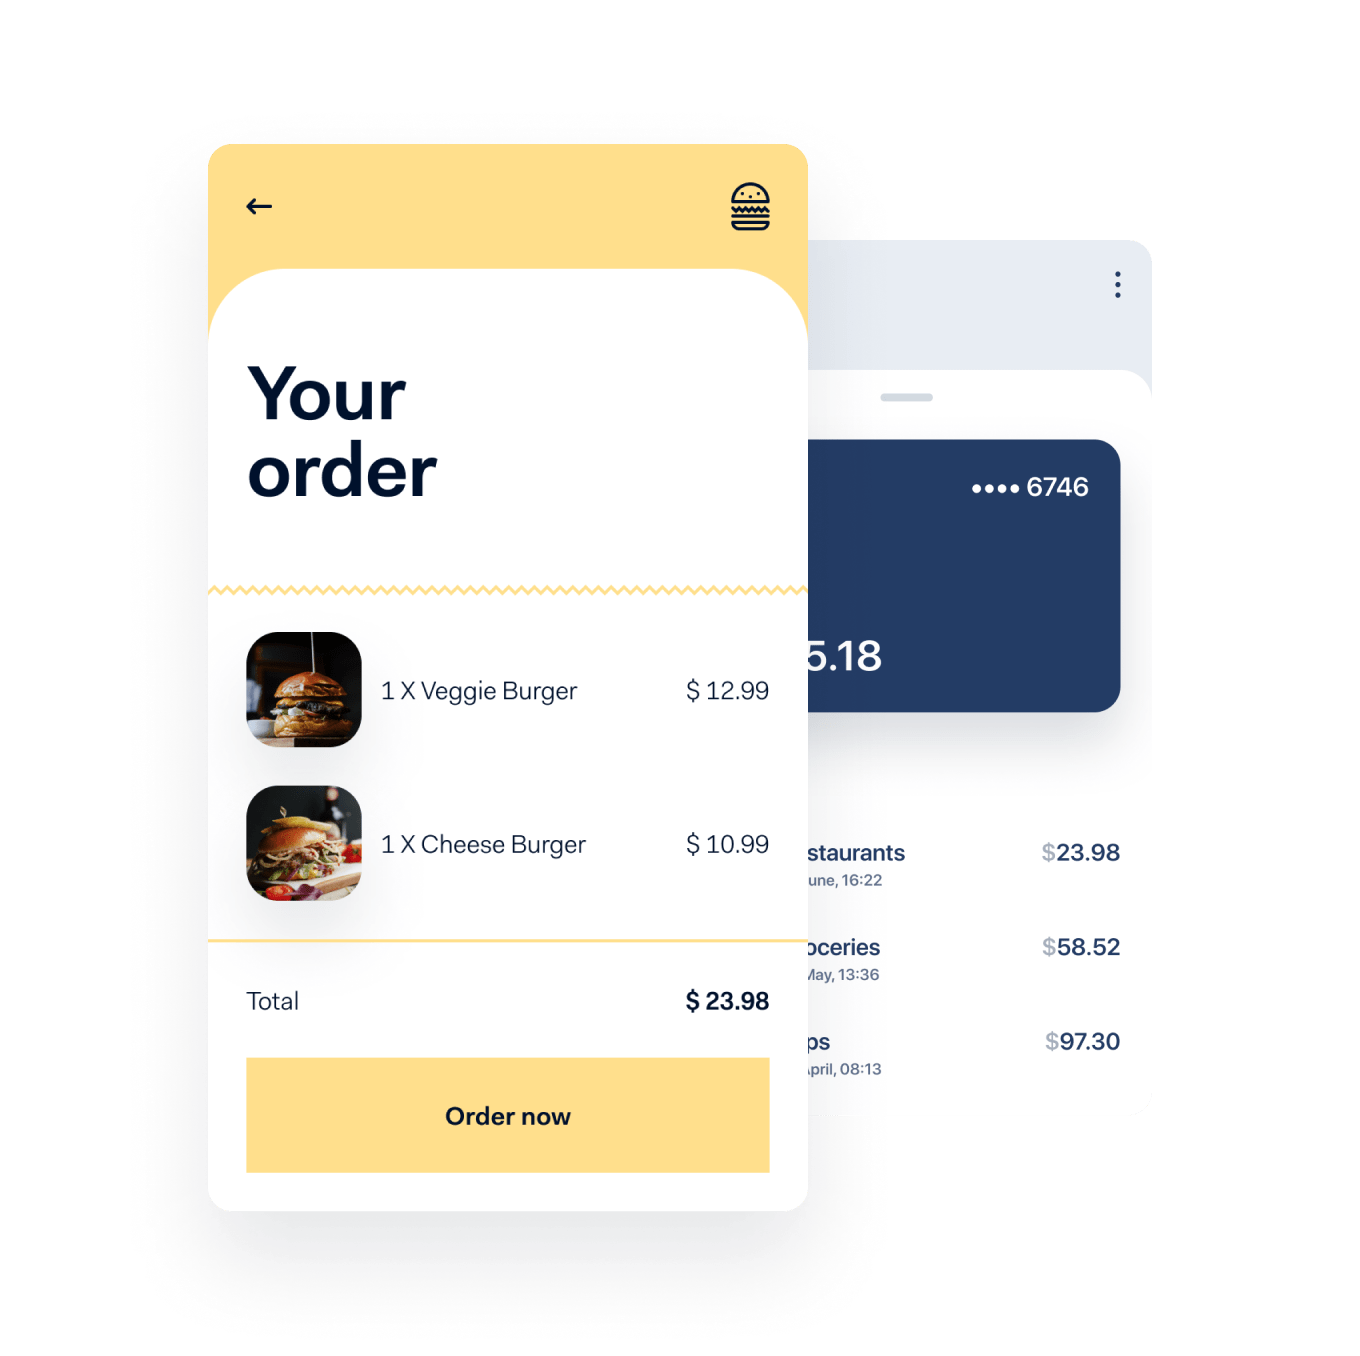 App interface for food order alongside a mobile wallet